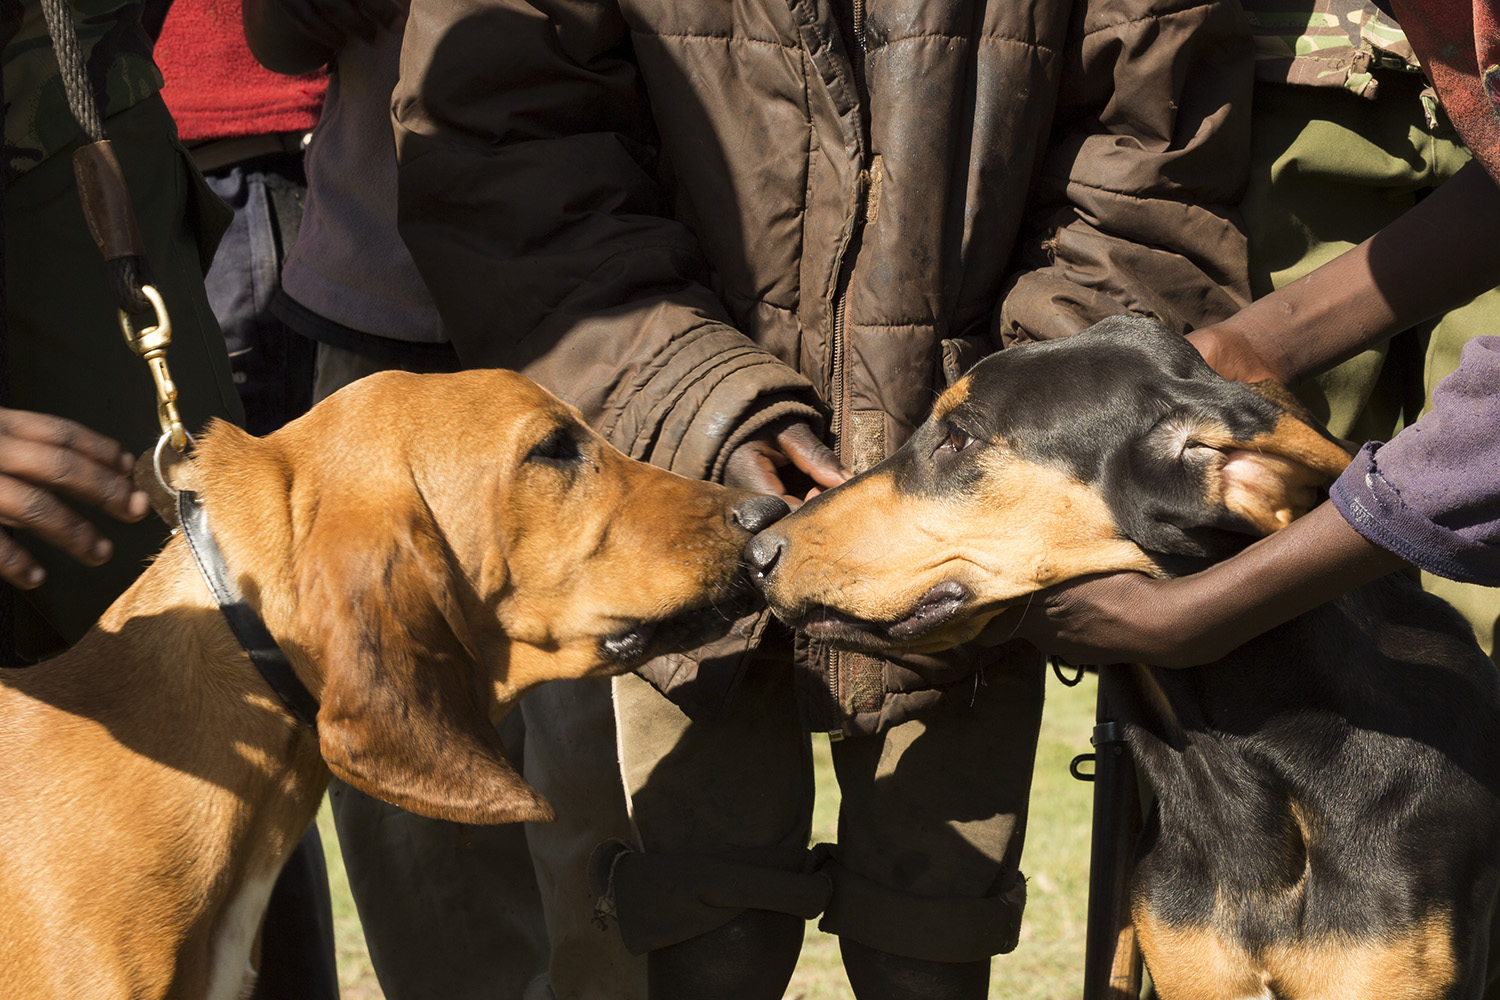 Sniffer dogs and kids hands